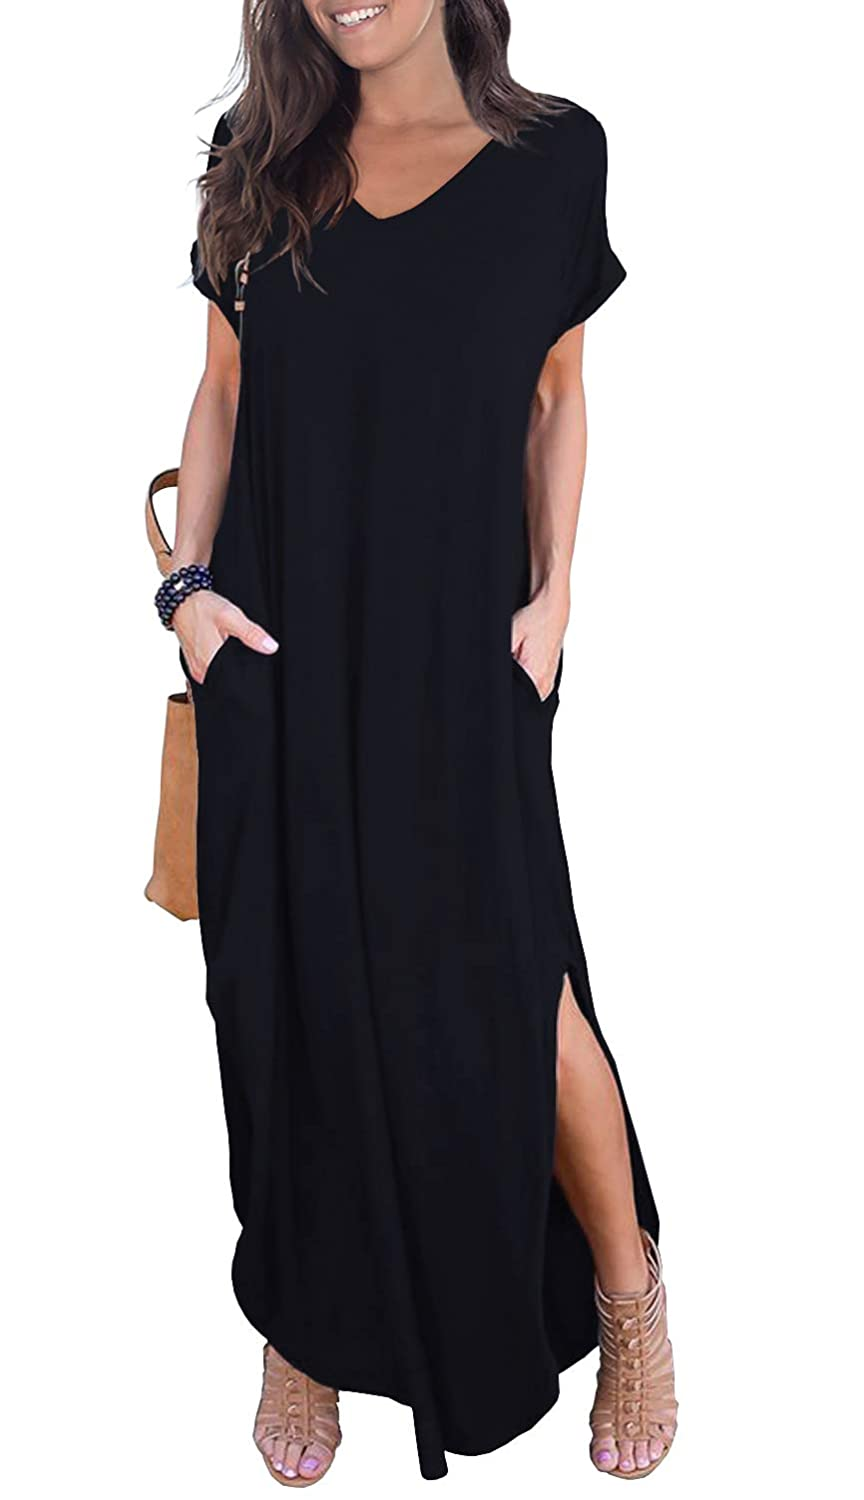 dde3ad37188 GRECERELLE Women s Casual Loose Pocket Long Dress Short Sleeve Split Maxi  Dresses at Amazon Women s Clothing store